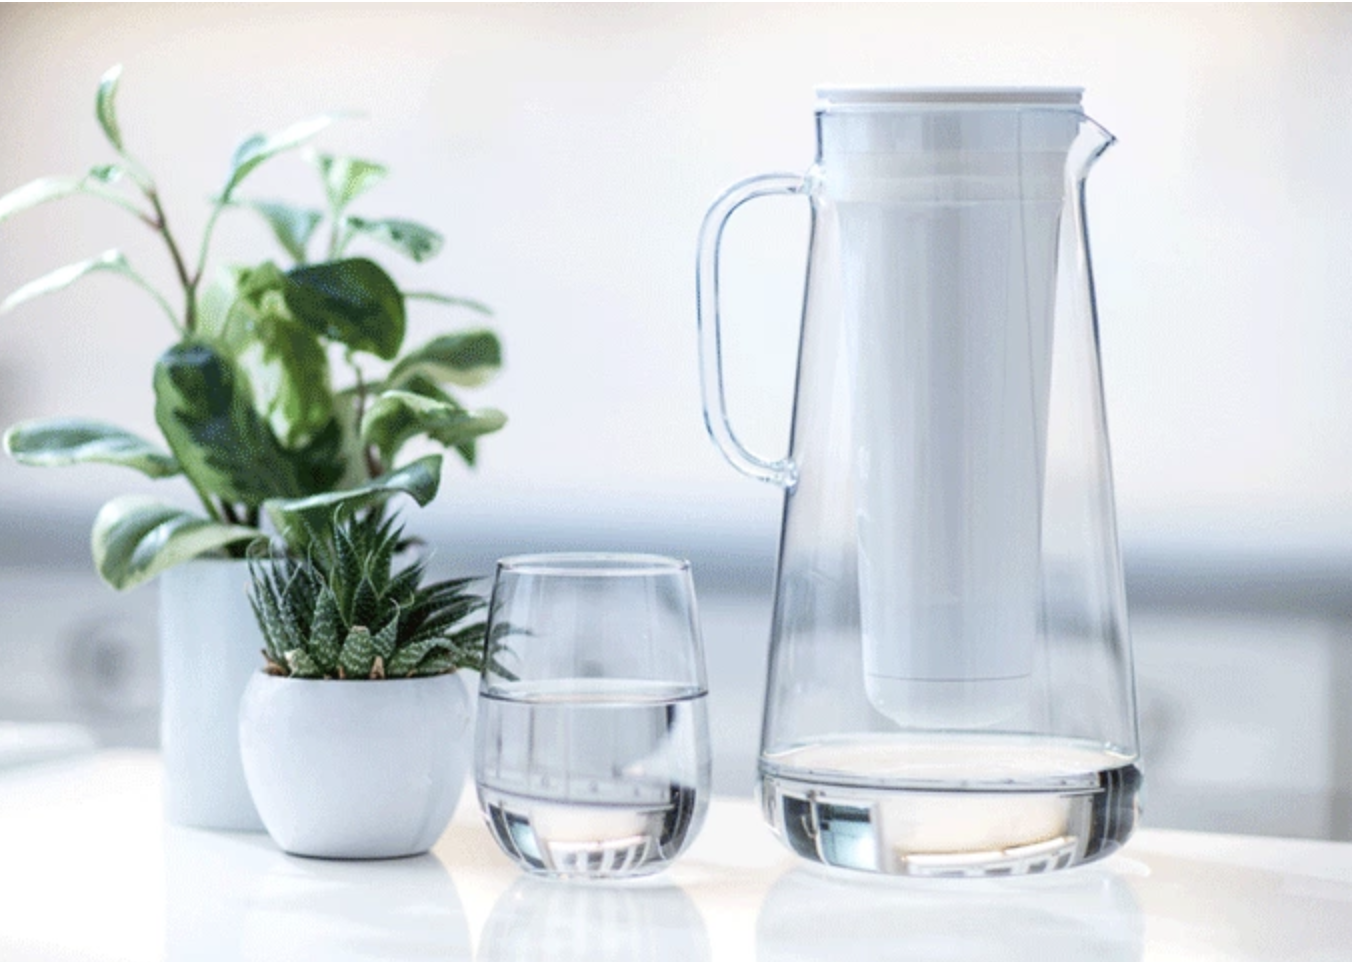 A Sleek Glass Water Filter Pitcher With Powerful Filtration